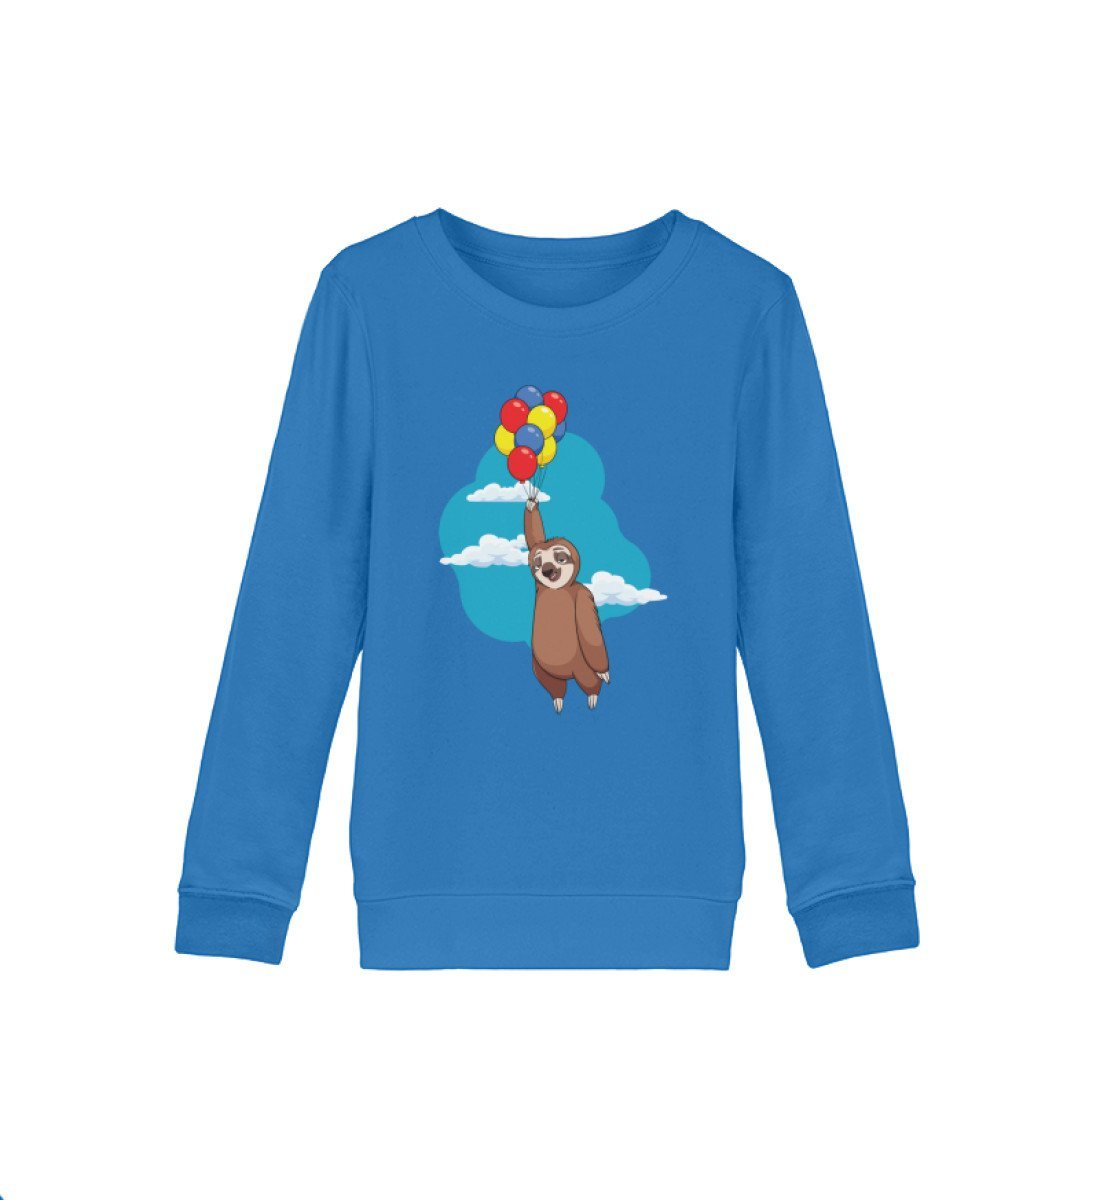 Bio Sweatshirt Kinder Balury Tierbilder Royal Blue 12/14 (152/164)